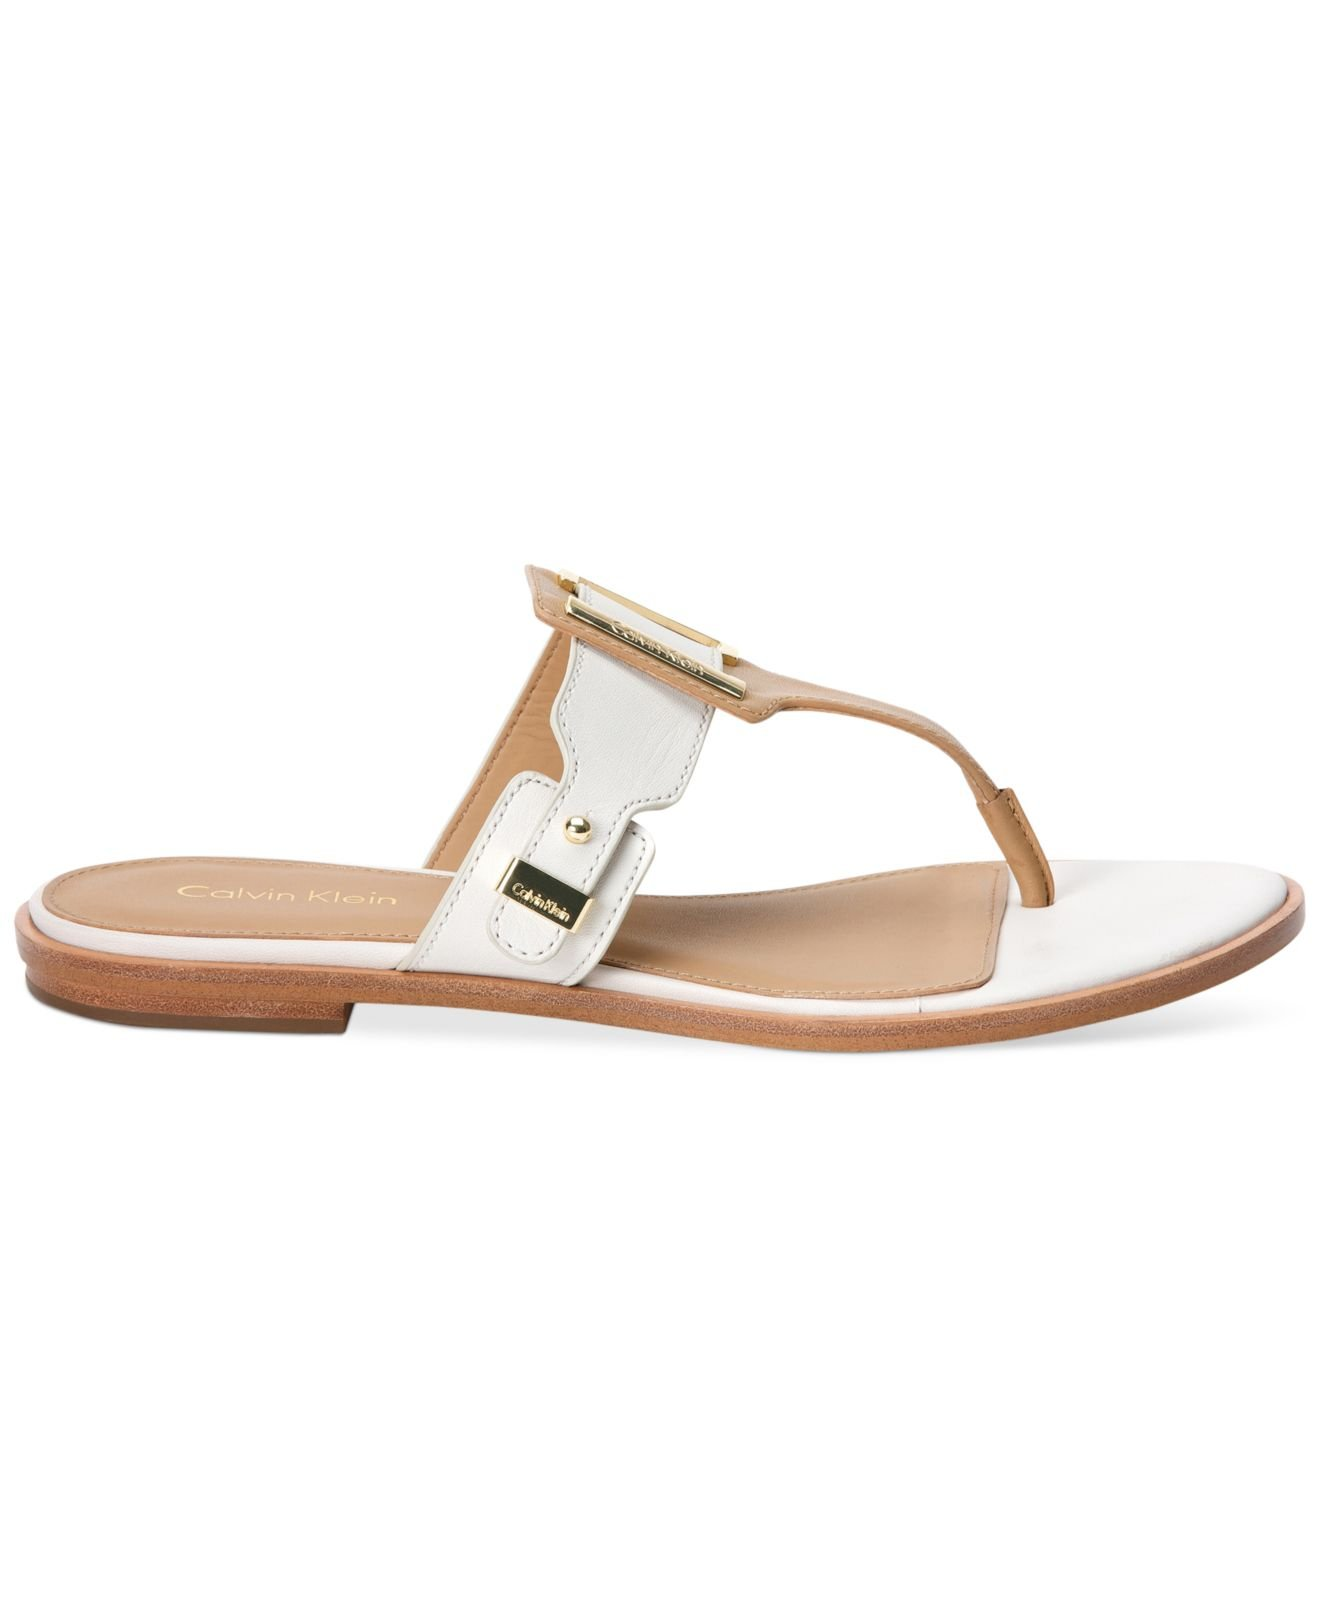 f7748de3b35 Lyst - Calvin Klein Women S Ula Buckle Thong Sandals in Metallic